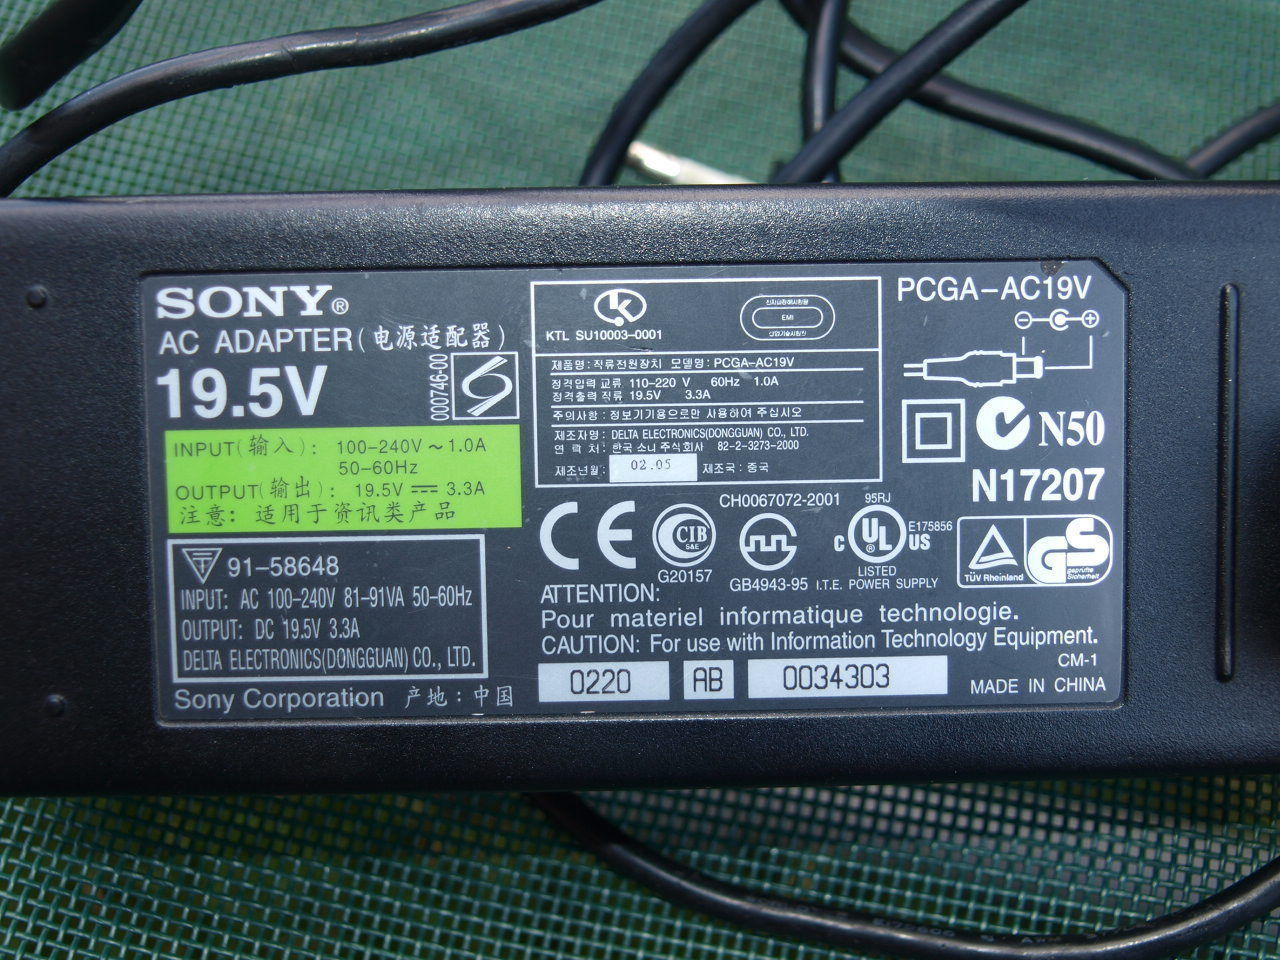 OEM 19.5V Adapter Power Supply Sony Vaio PCGA-AC19V1 VGP-AC19V43 VGP-AC19V48